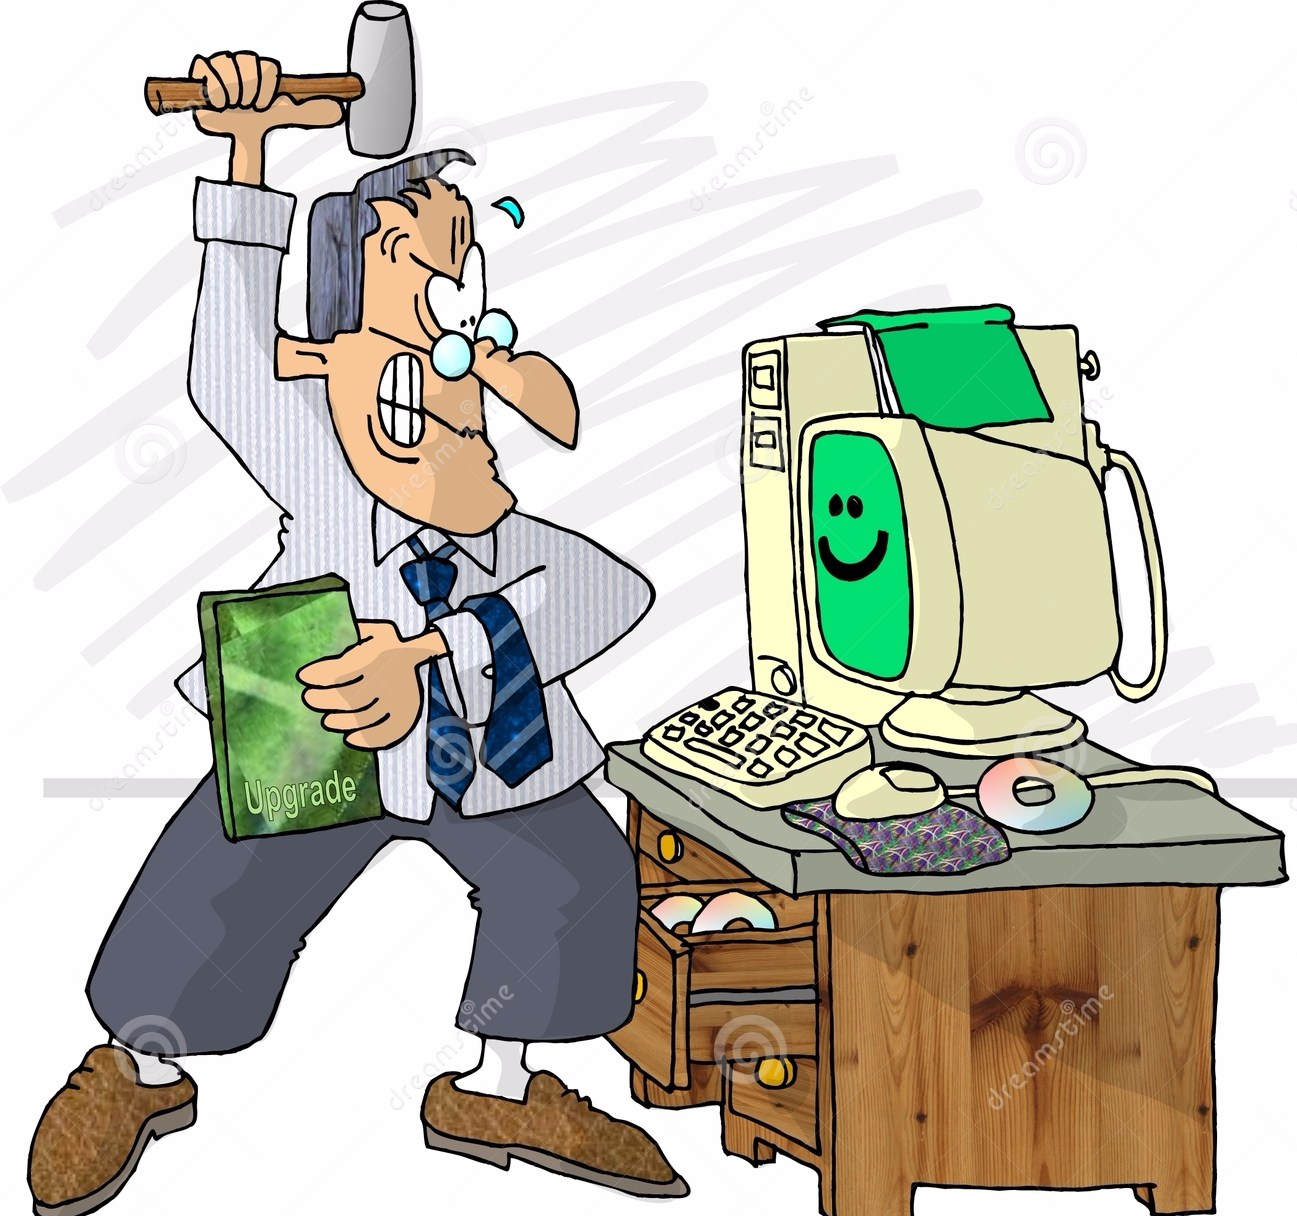 Cartoon image of man ready to hit computer with hammer